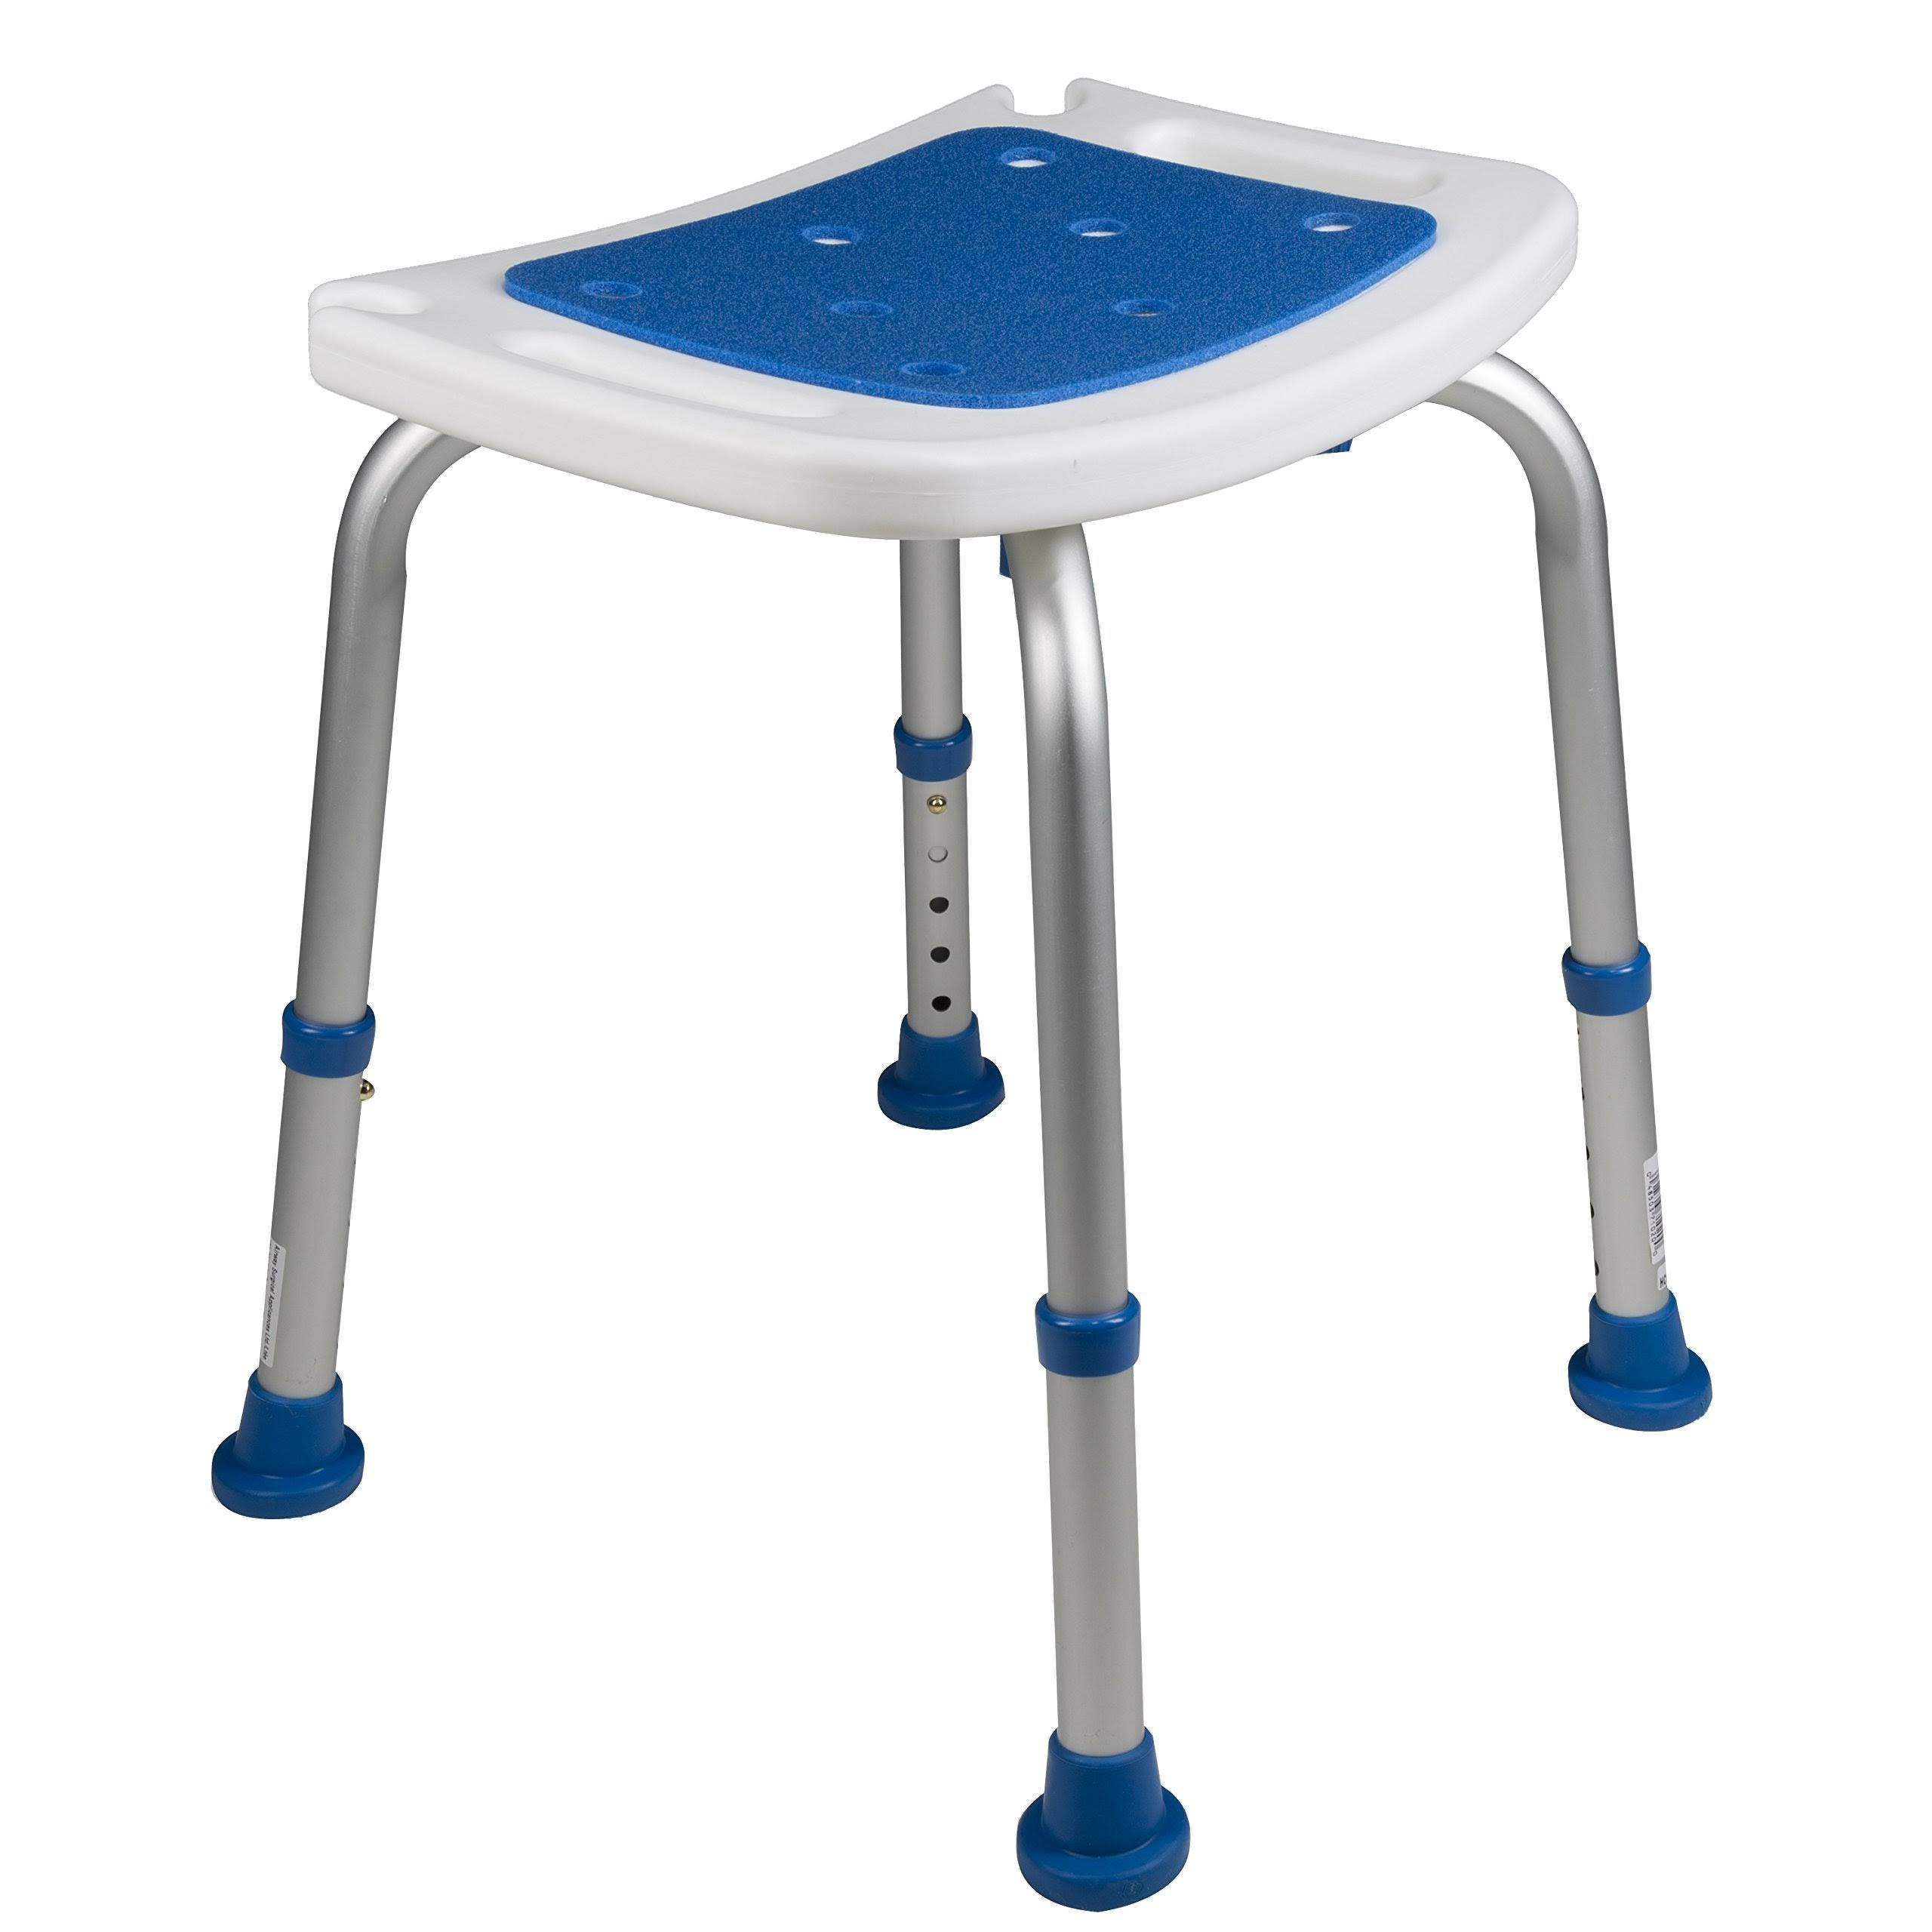 PCP Padded Bath Safety Seat - White and Blue